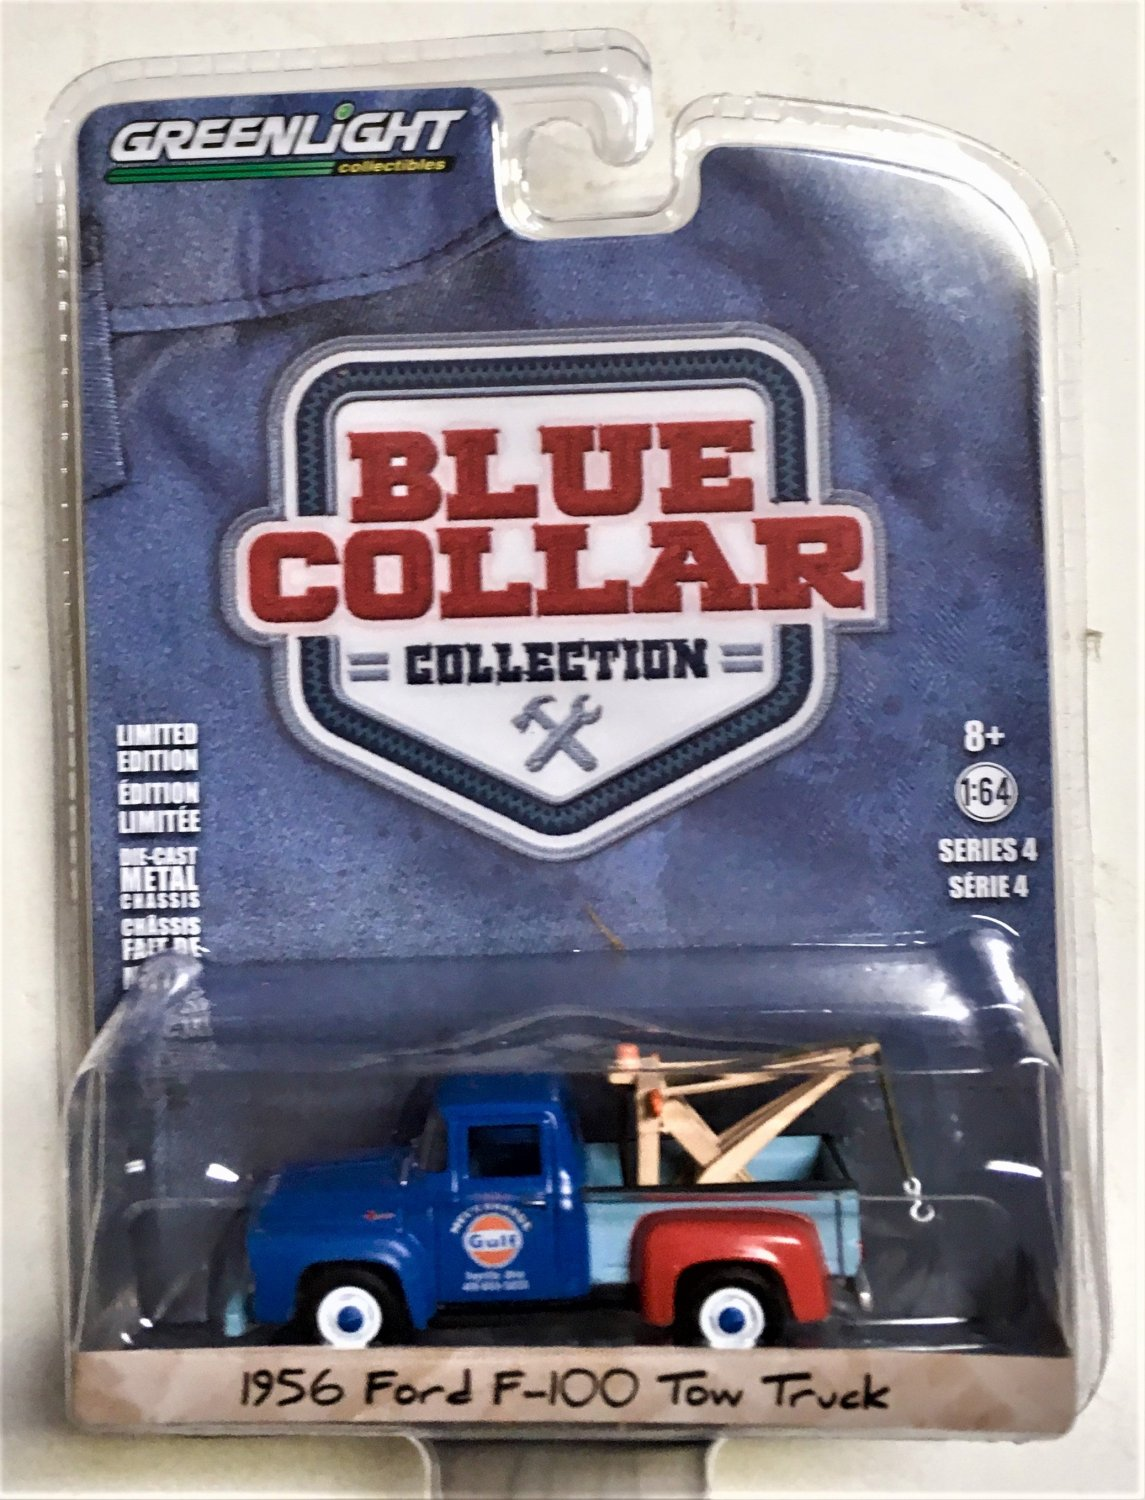 Greenlight Blue Collar Series 4 #35100A 1956 Ford F-100 Tow Truck